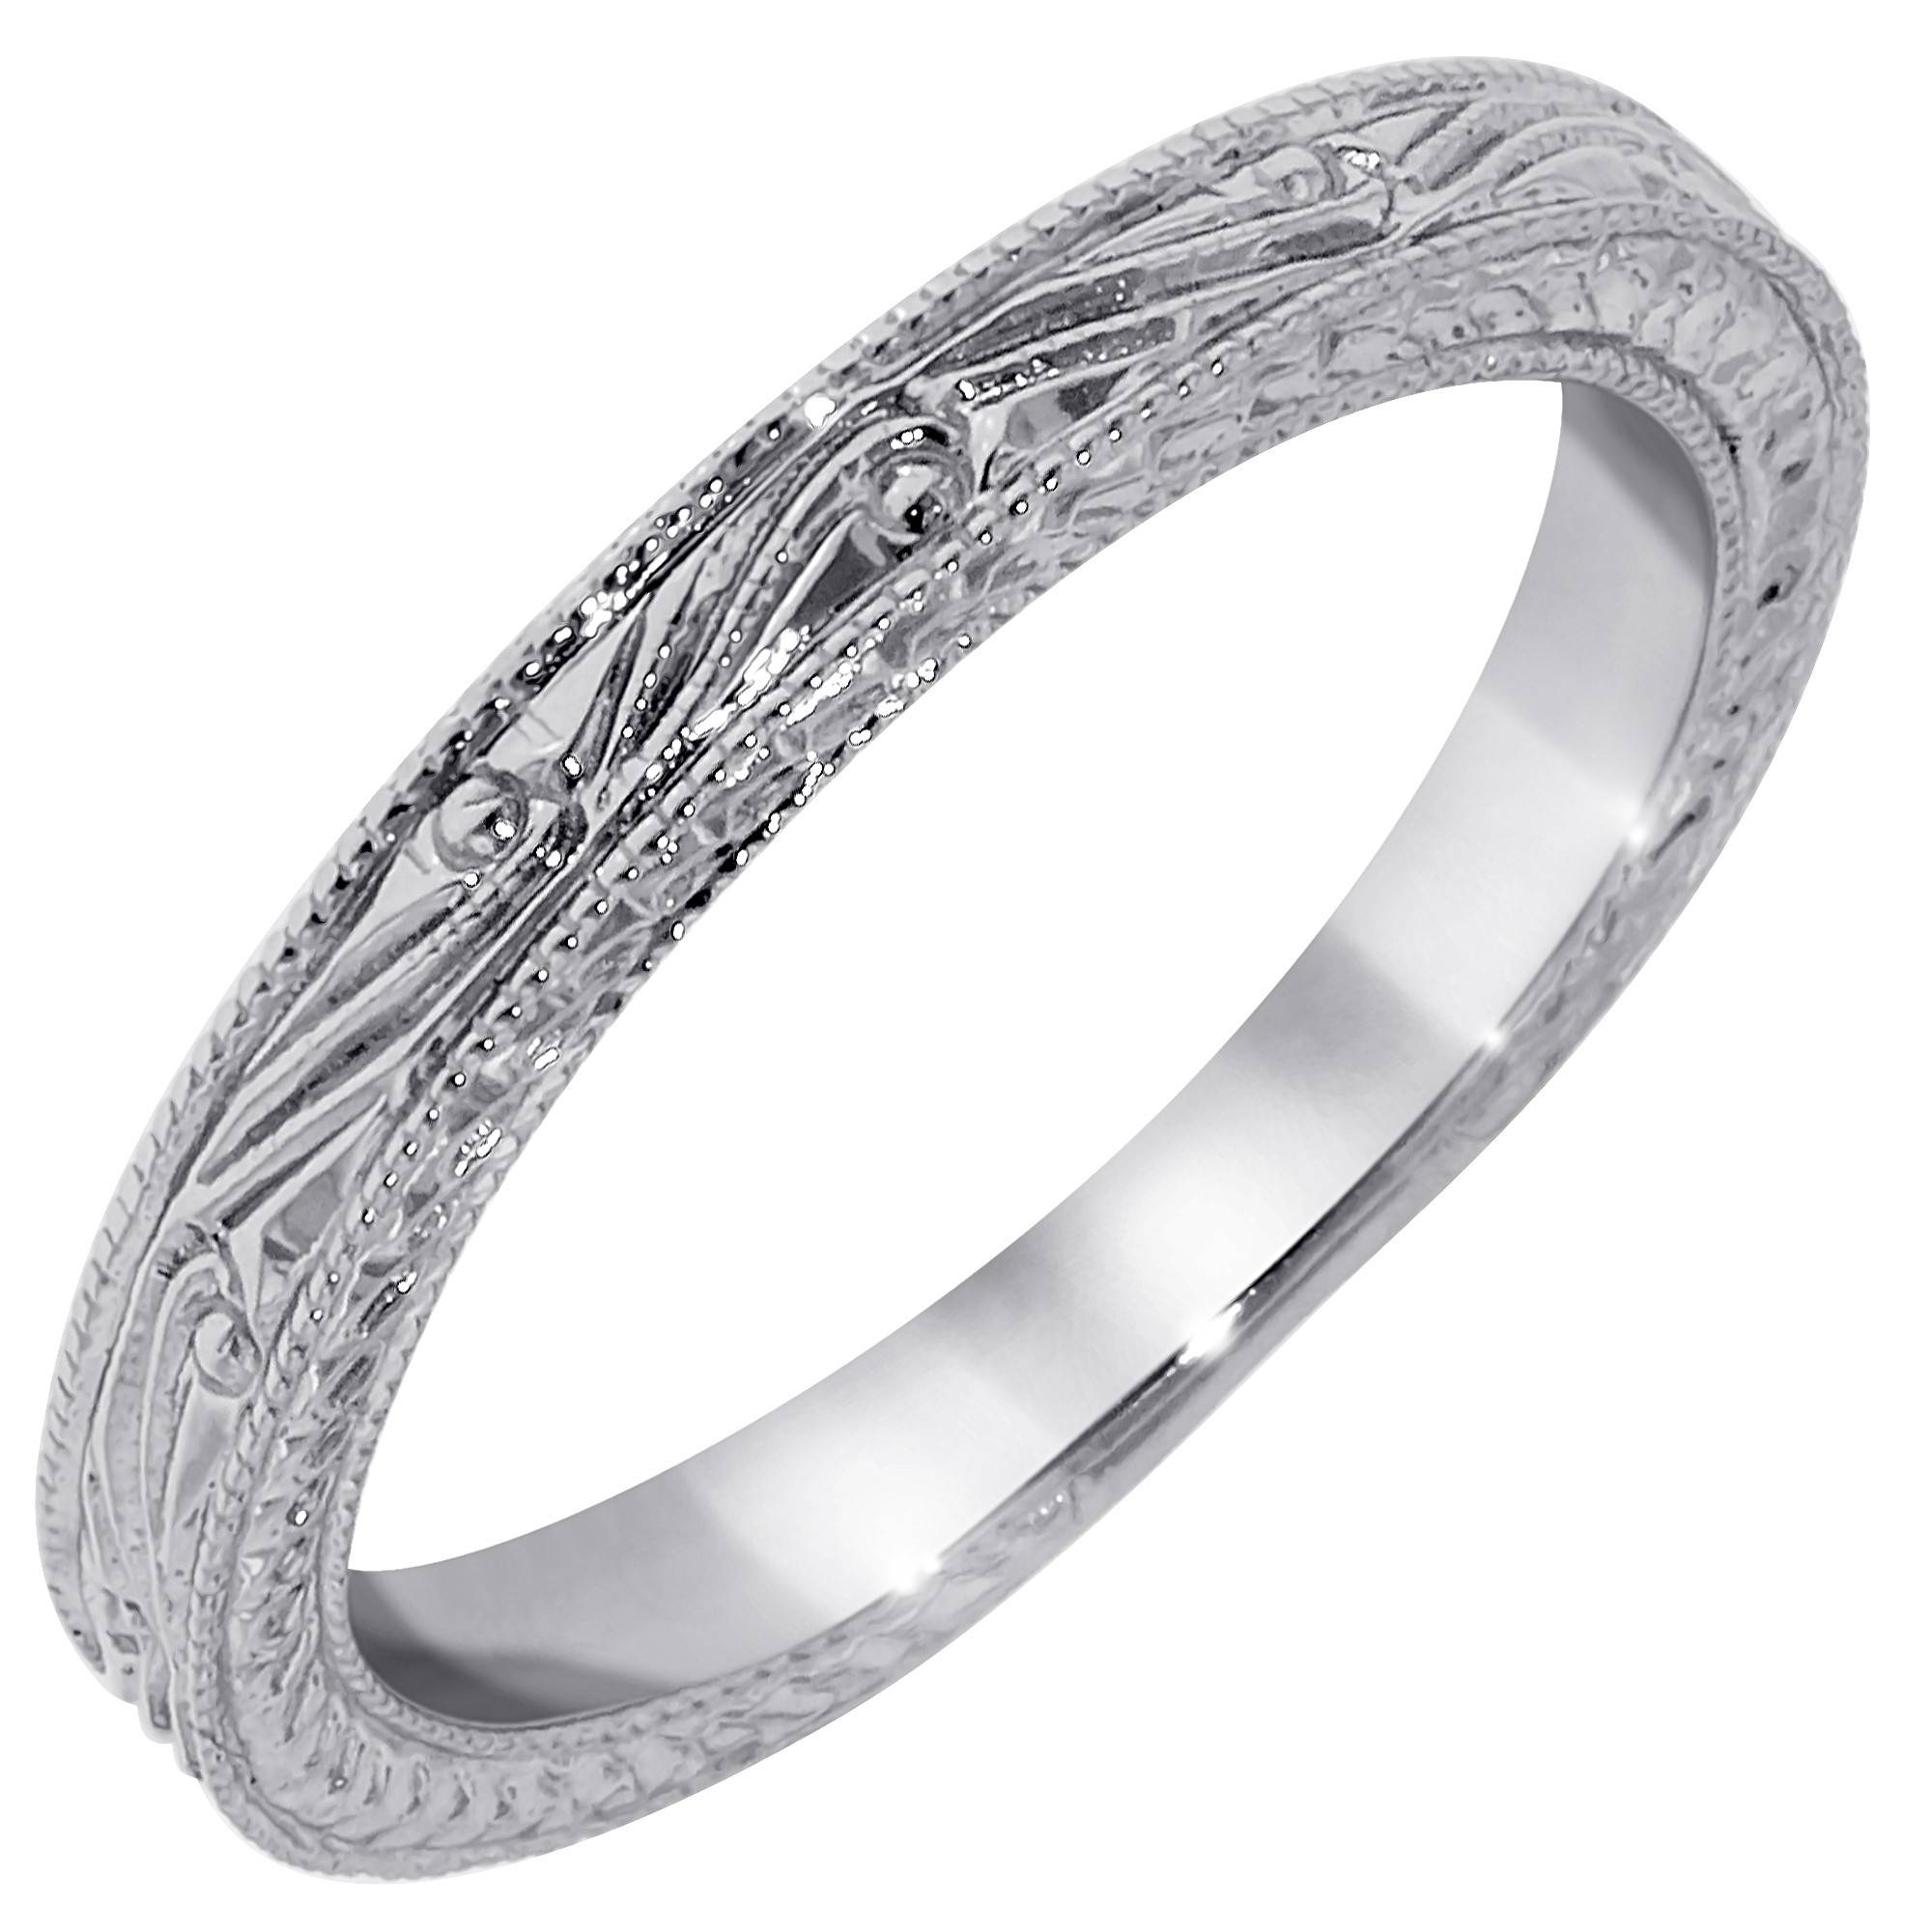 Timeless Designs Engraved Wedding Band In 14Kt White Gold Pertaining To Engrave Wedding Bands (Gallery 12 of 15)